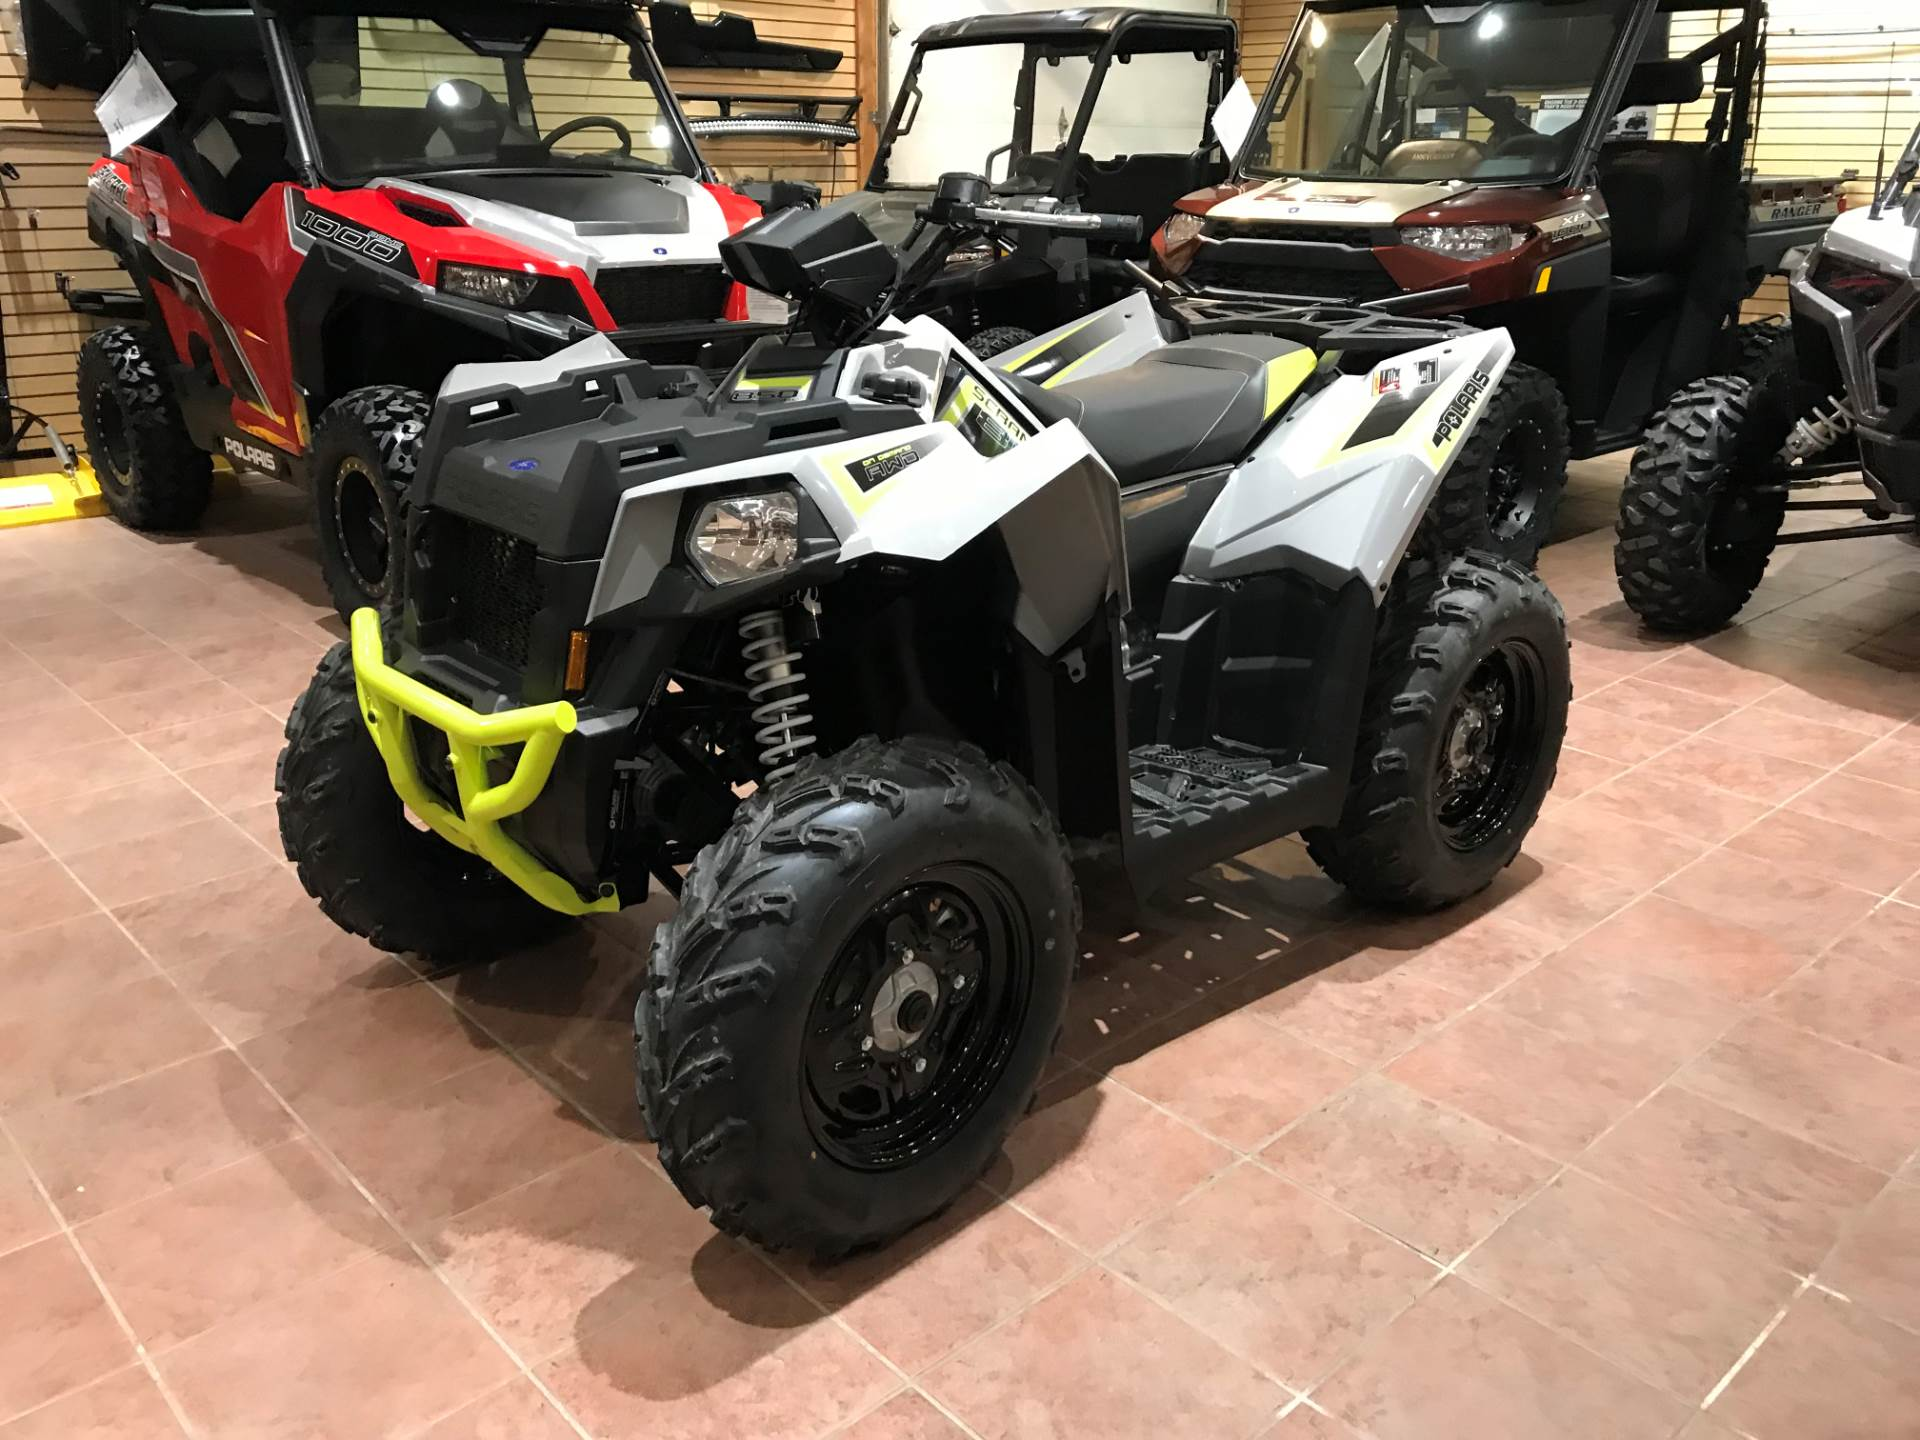 2019 Polaris Scrambler 850 in Chicora, Pennsylvania